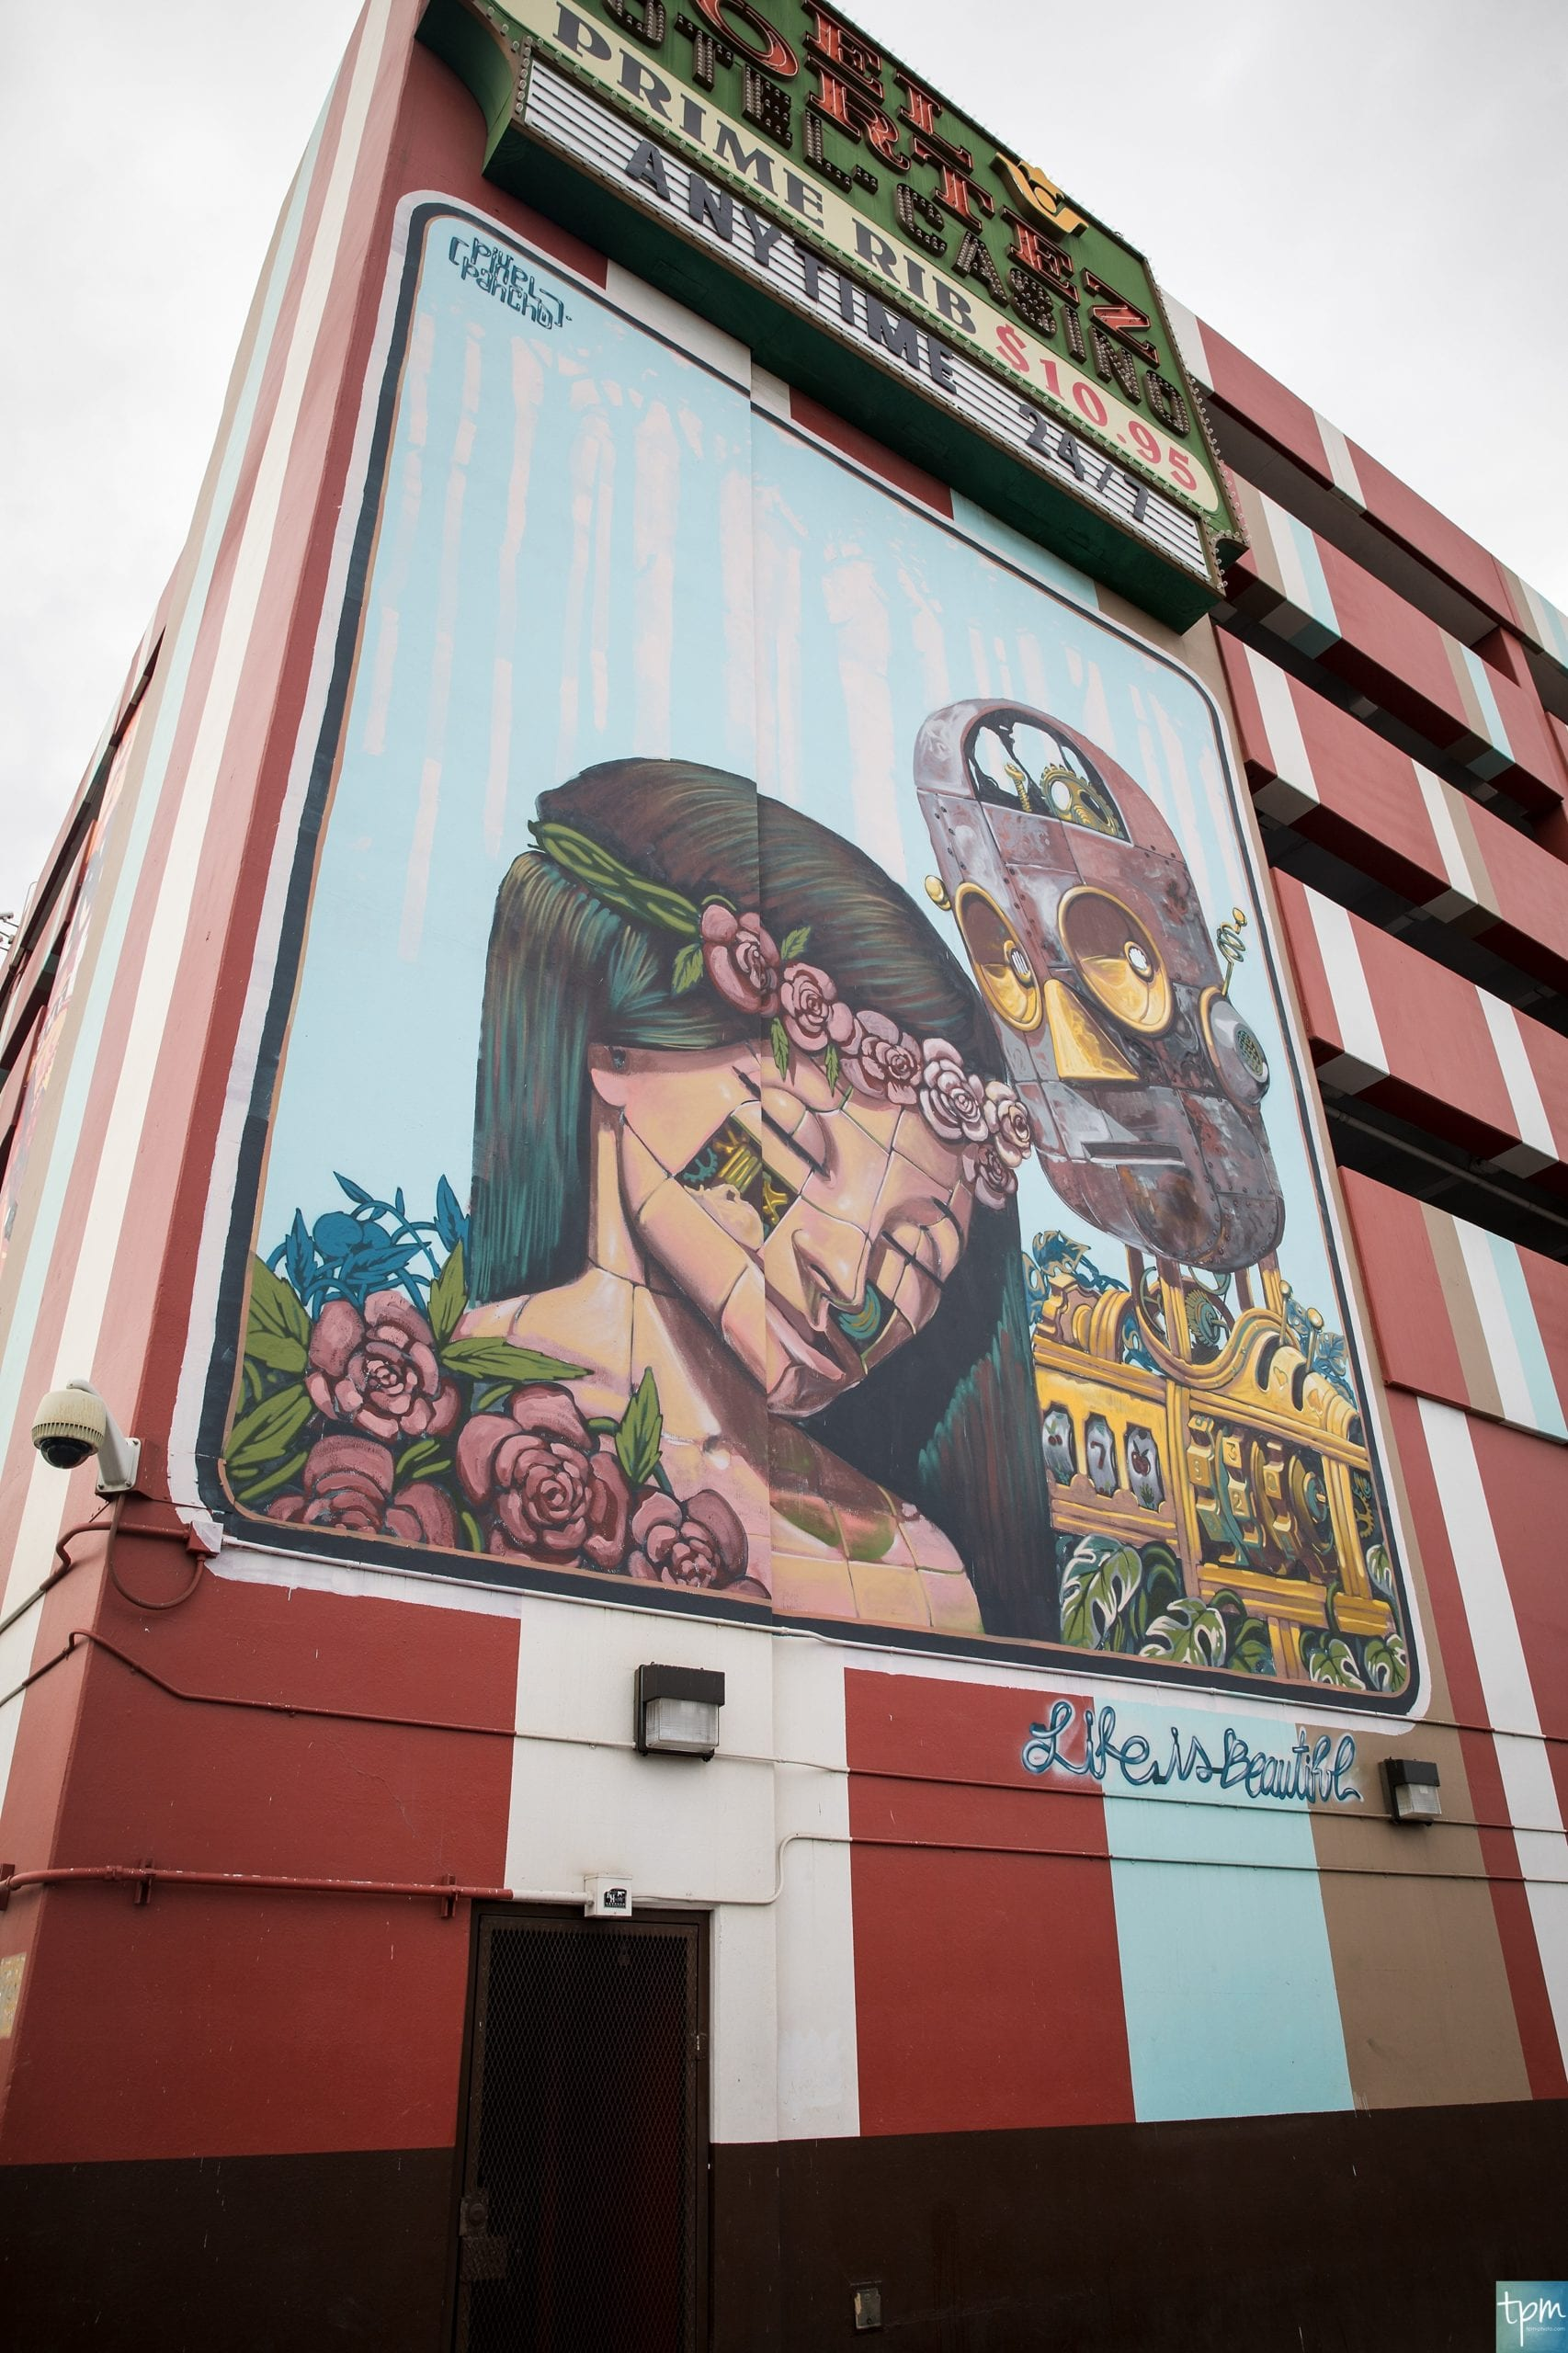 Pixel Pancho, The Meaning, Fremont, Taylored Photo Memories, Las Vegas Murals